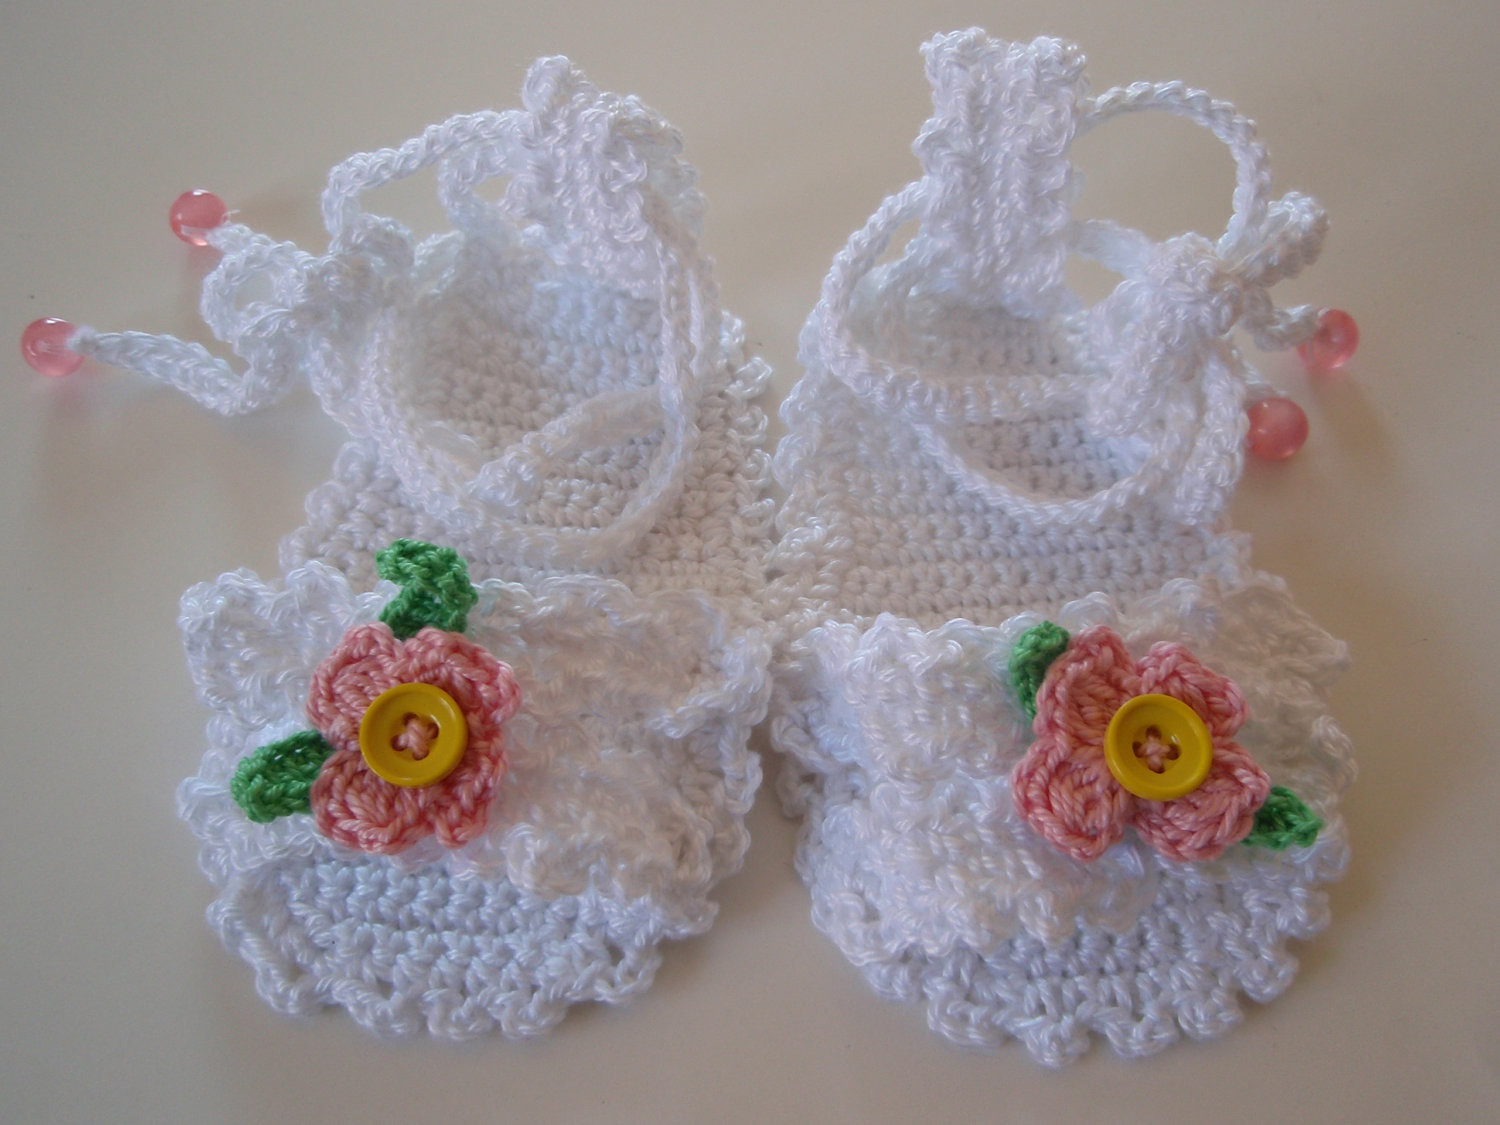 Crochet Baby Sandals Elegant Free Crochet Baby Shoe Patterns Pinterest Of New 46 Models Crochet Baby Sandals